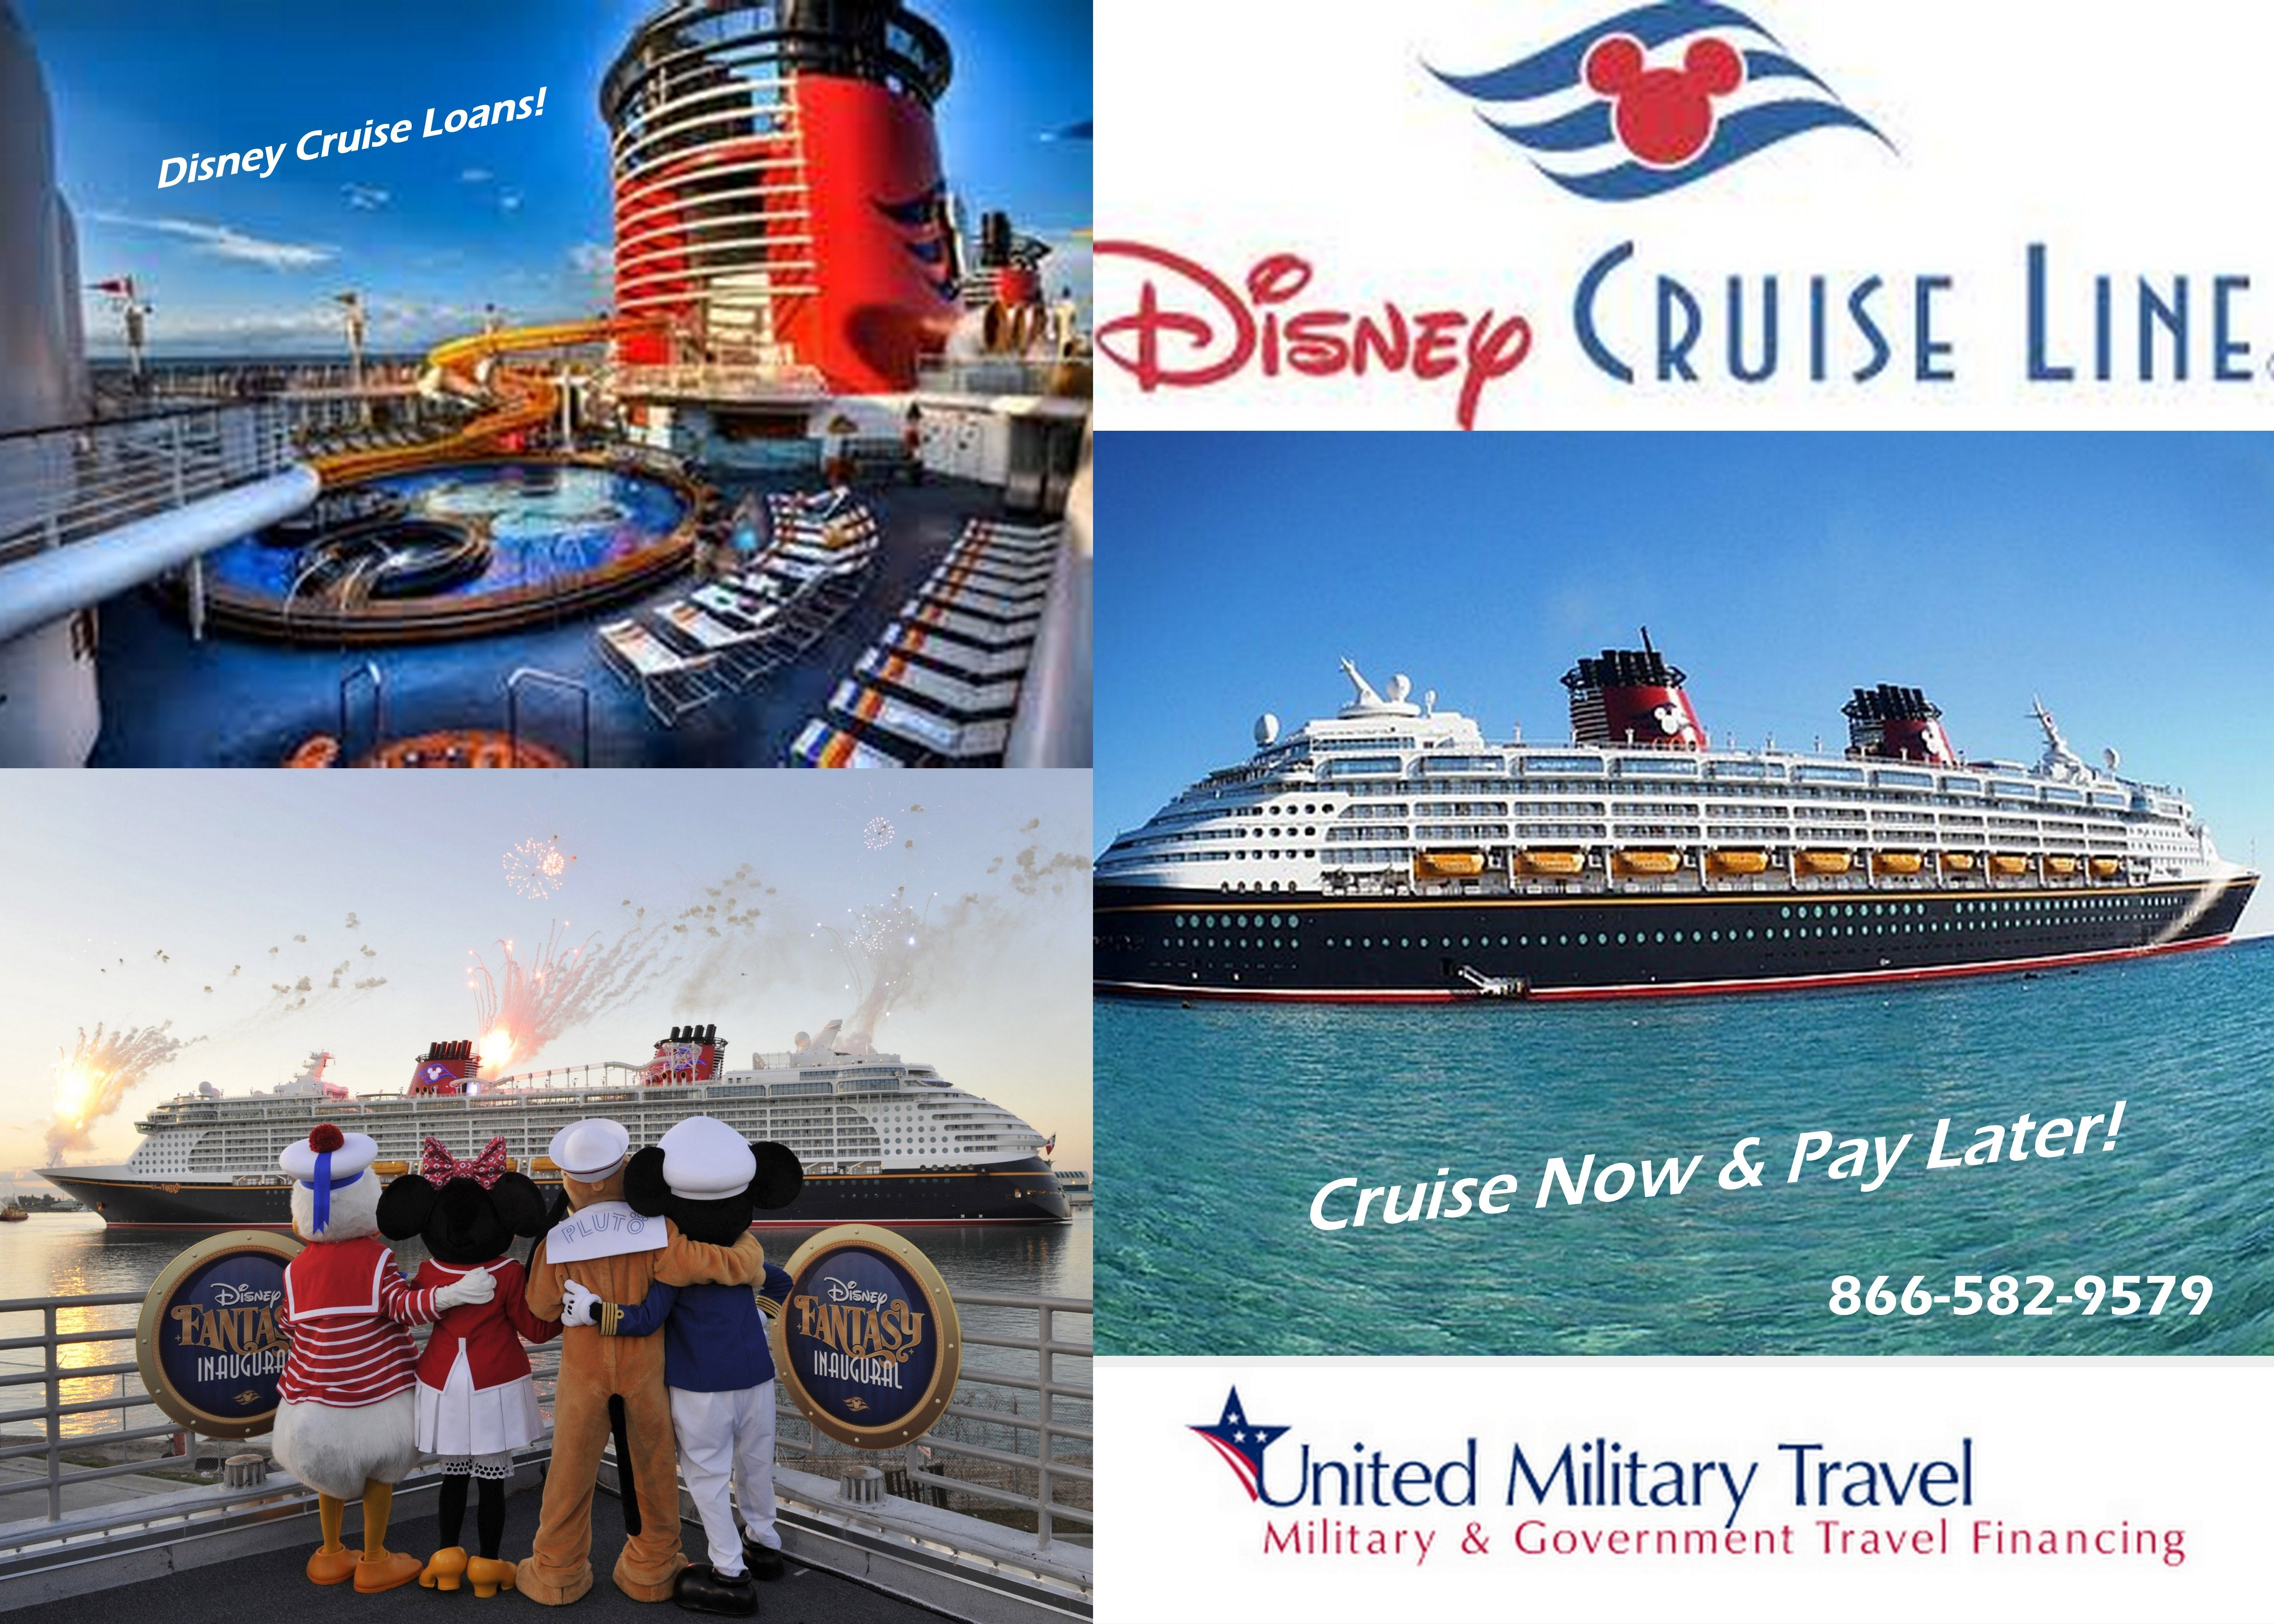 Pin by United Military Travel on Aboard Cruise